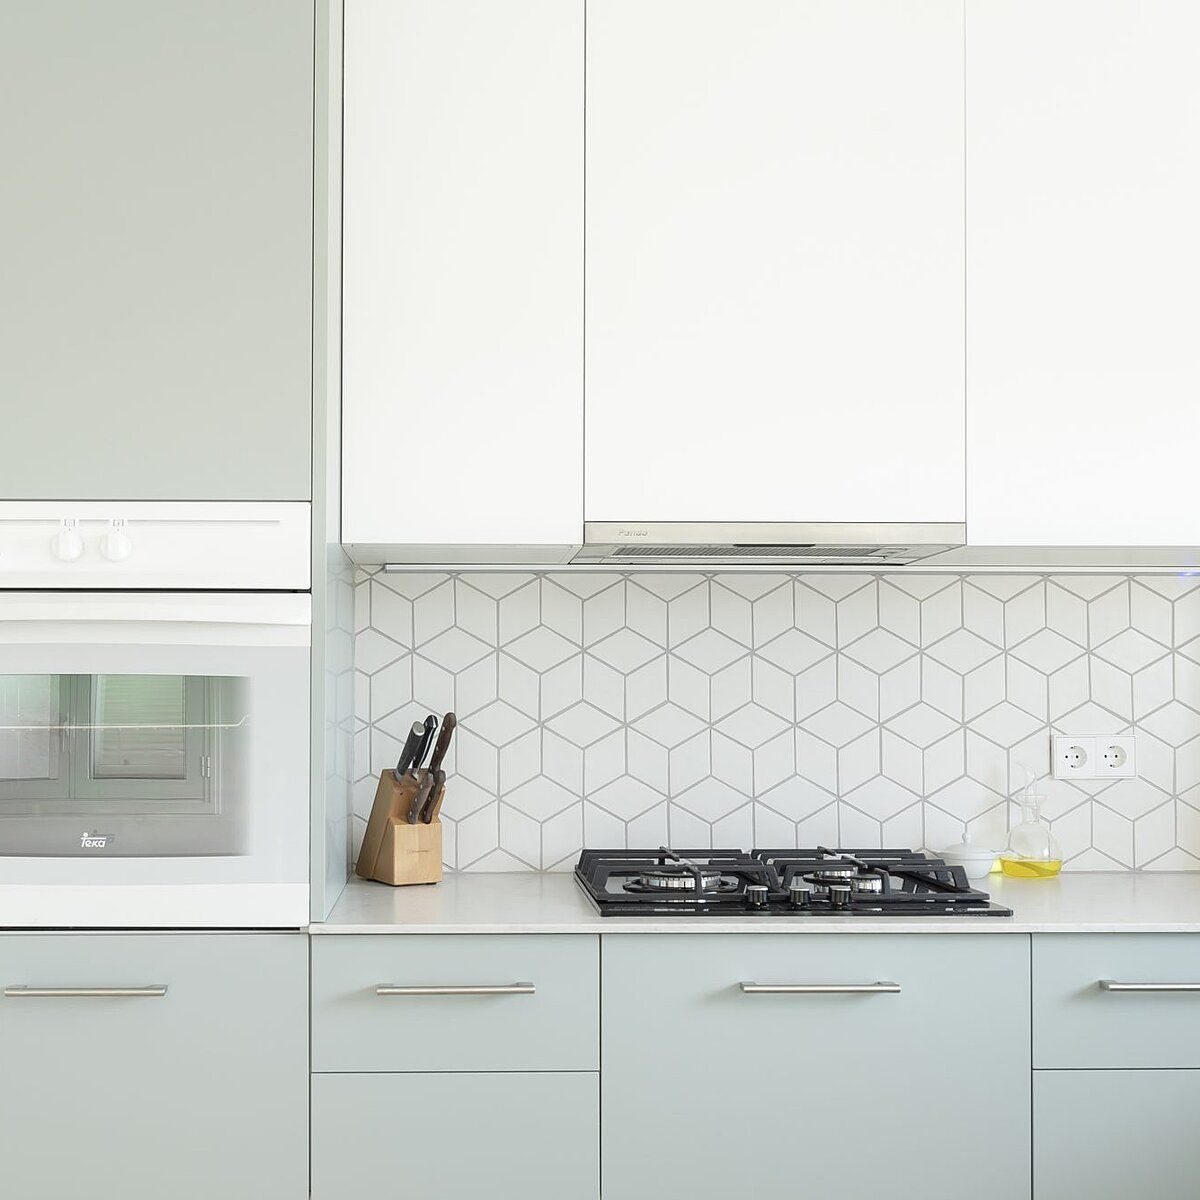 5 Surprisingly Germy Kitchen Items And The Right Way To Disinfect Them Clean Kitchen Cabinets Clean Laminate Countertops Kitchen Items